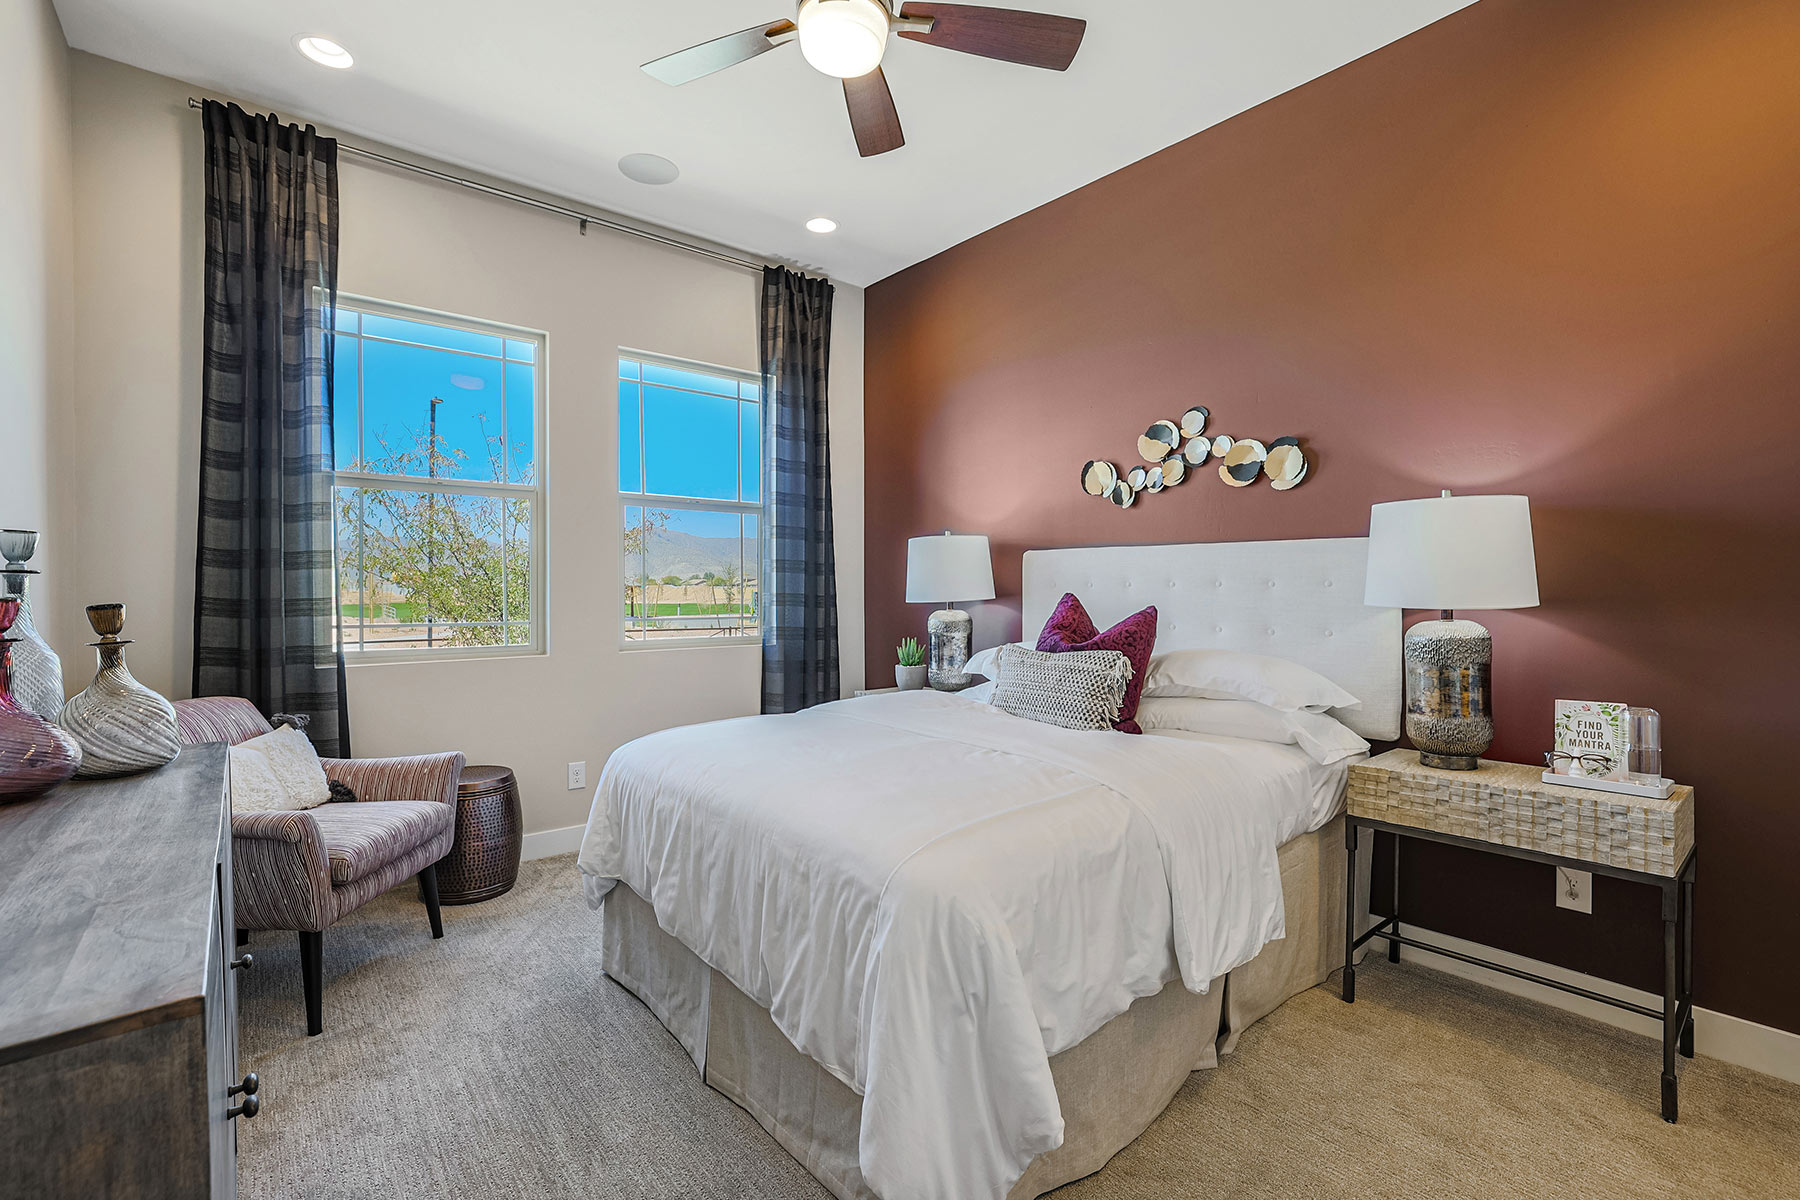 Brookstone Plan Bedroom at Azure Canyon in Litchfield Park Arizona by Mattamy Homes